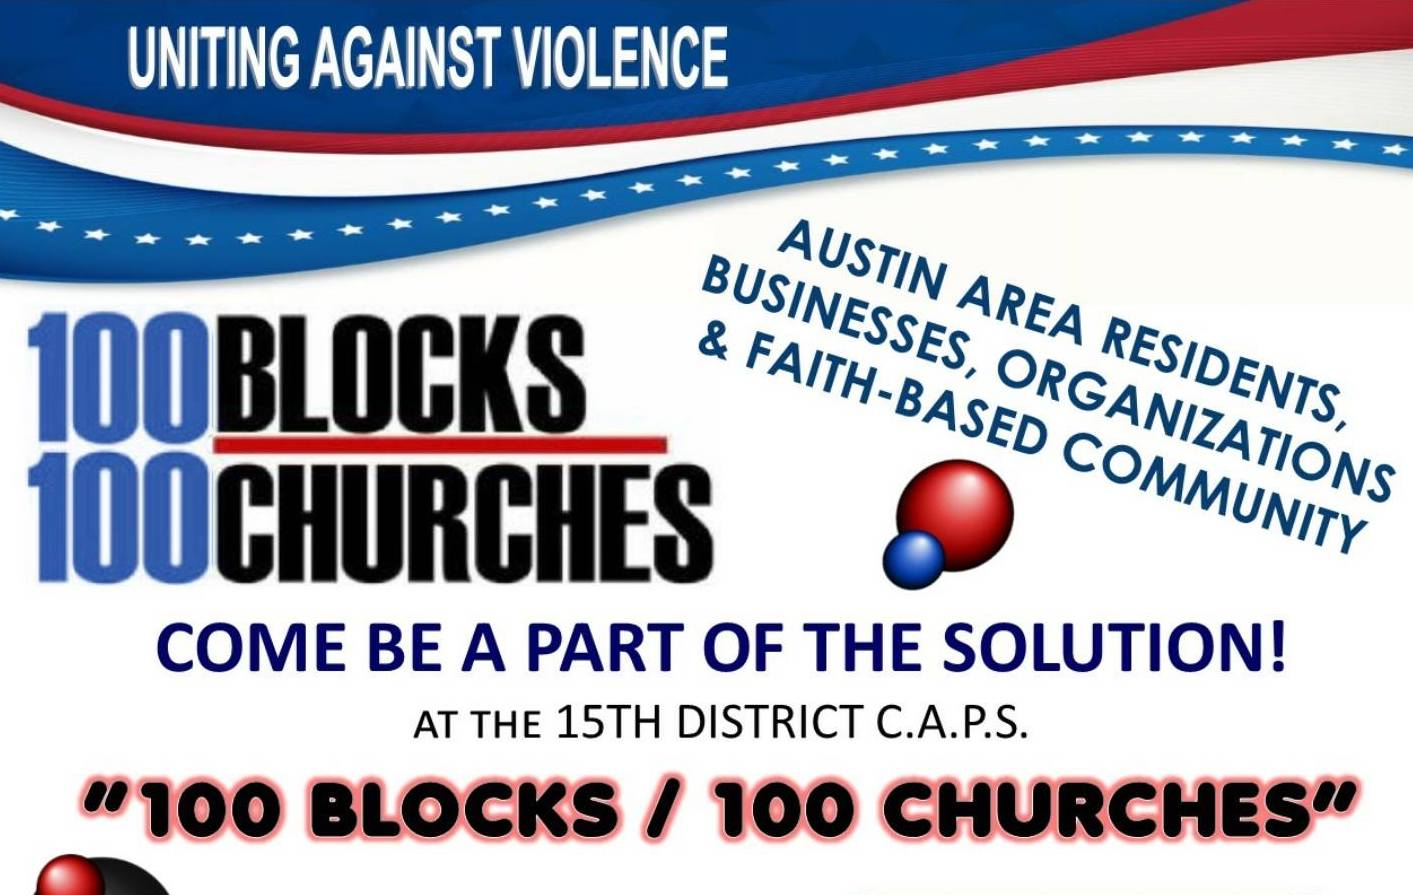 100 Blocks, 100 Churches